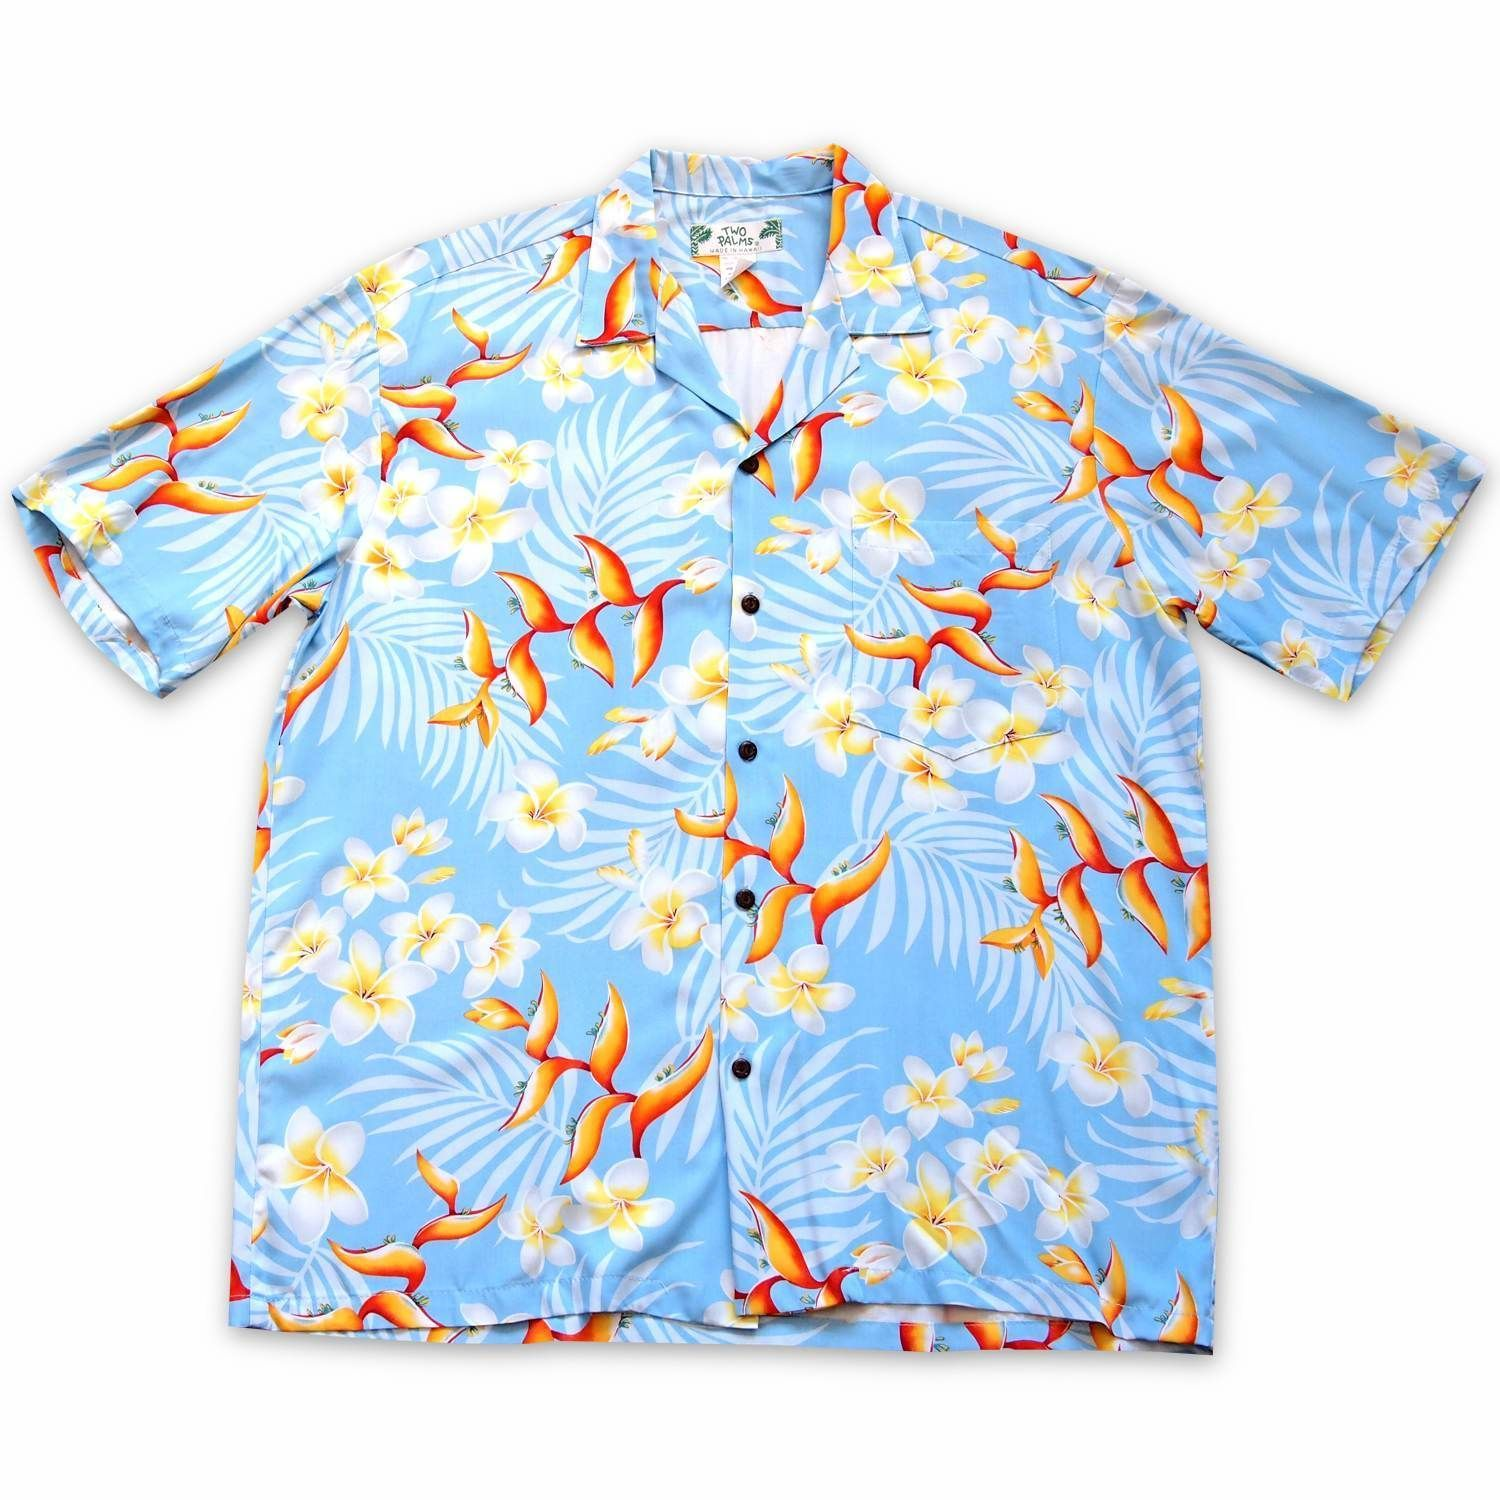 Heliconia Bliss Blue Hawaiian Rayon Shirt